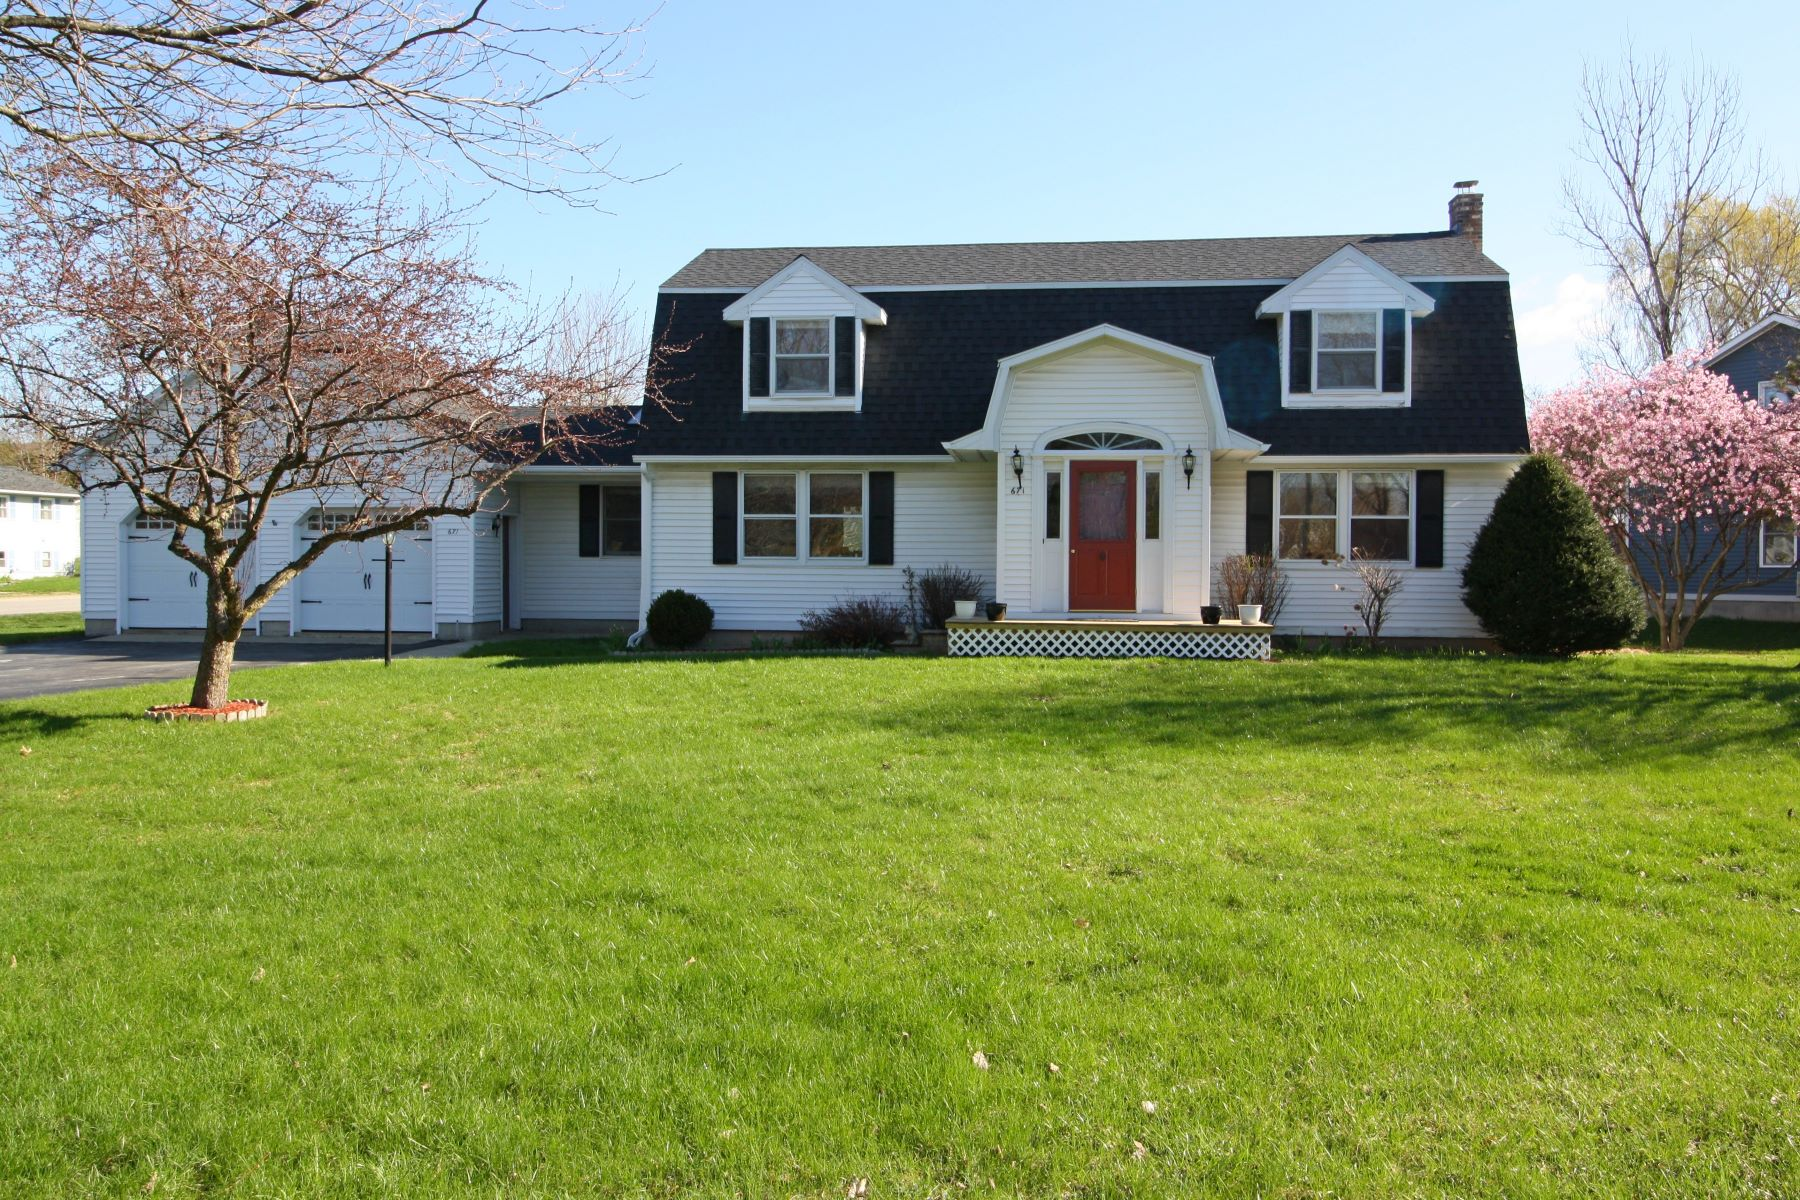 Single Family Homes for Sale at 671 Buttolph Drive, Middlebury 671 Buttolph Dr Middlebury, Vermont 05753 United States